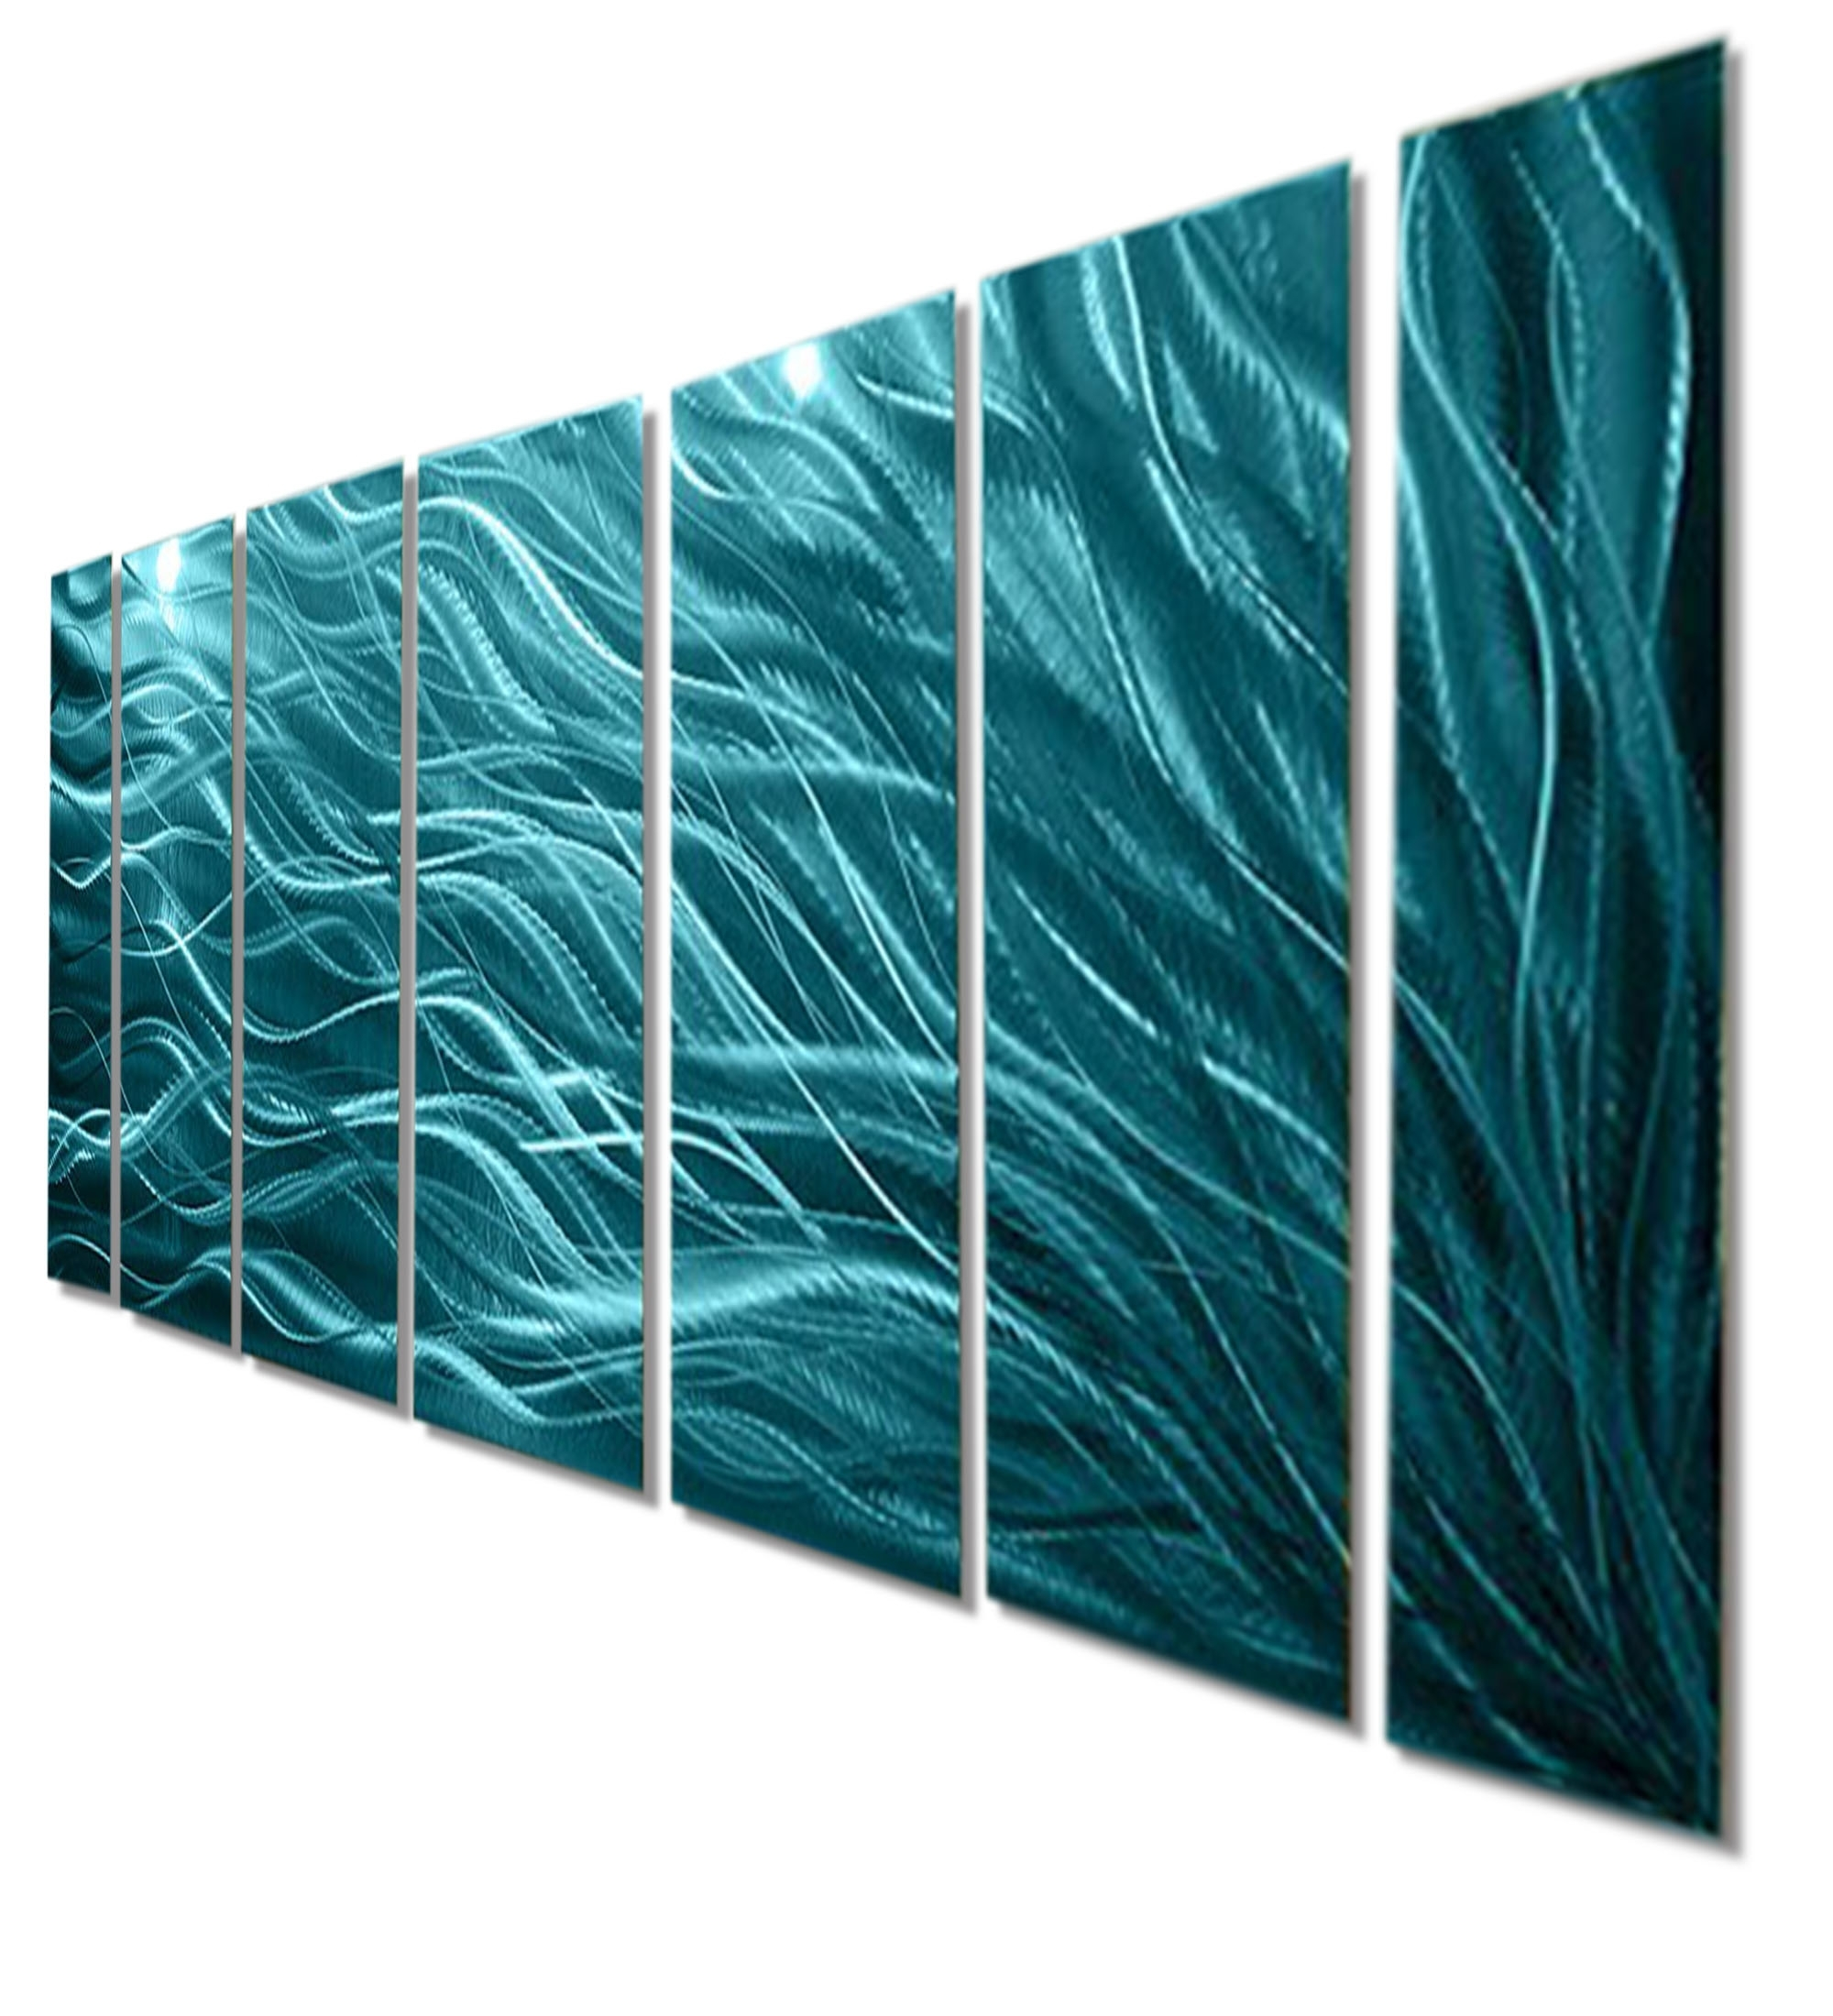 Aqua Abstract Wall Art Throughout Most Recent Rays Of Hope Aqua – Large Modern Abstract Metal Wall Artjon (View 15 of 15)